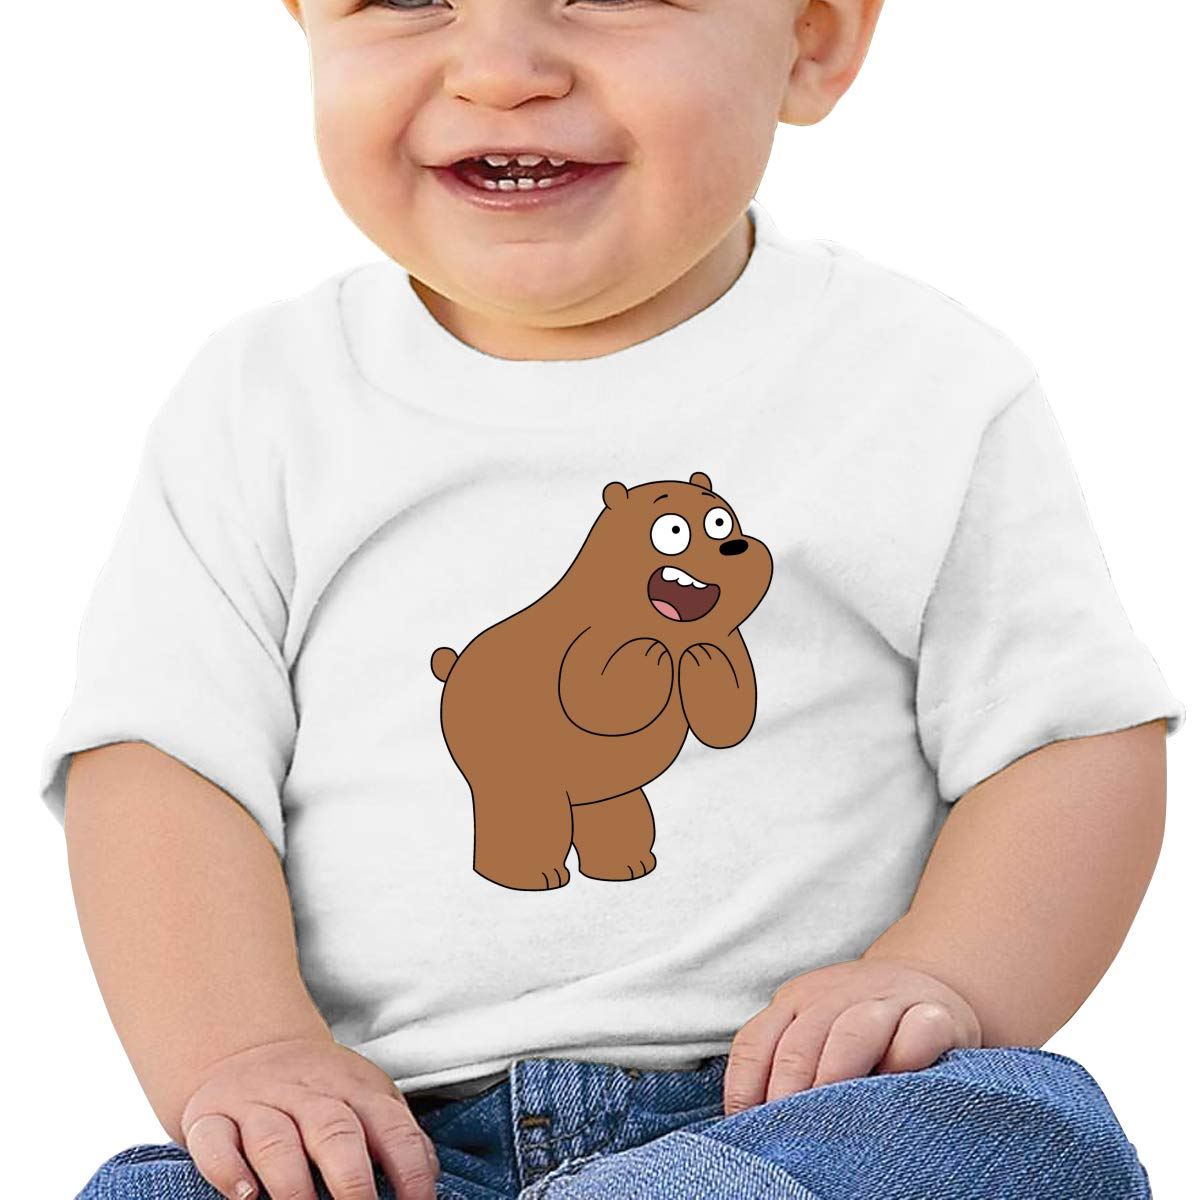 Baby Oh Bear Shirt Toddler Cotton Tee